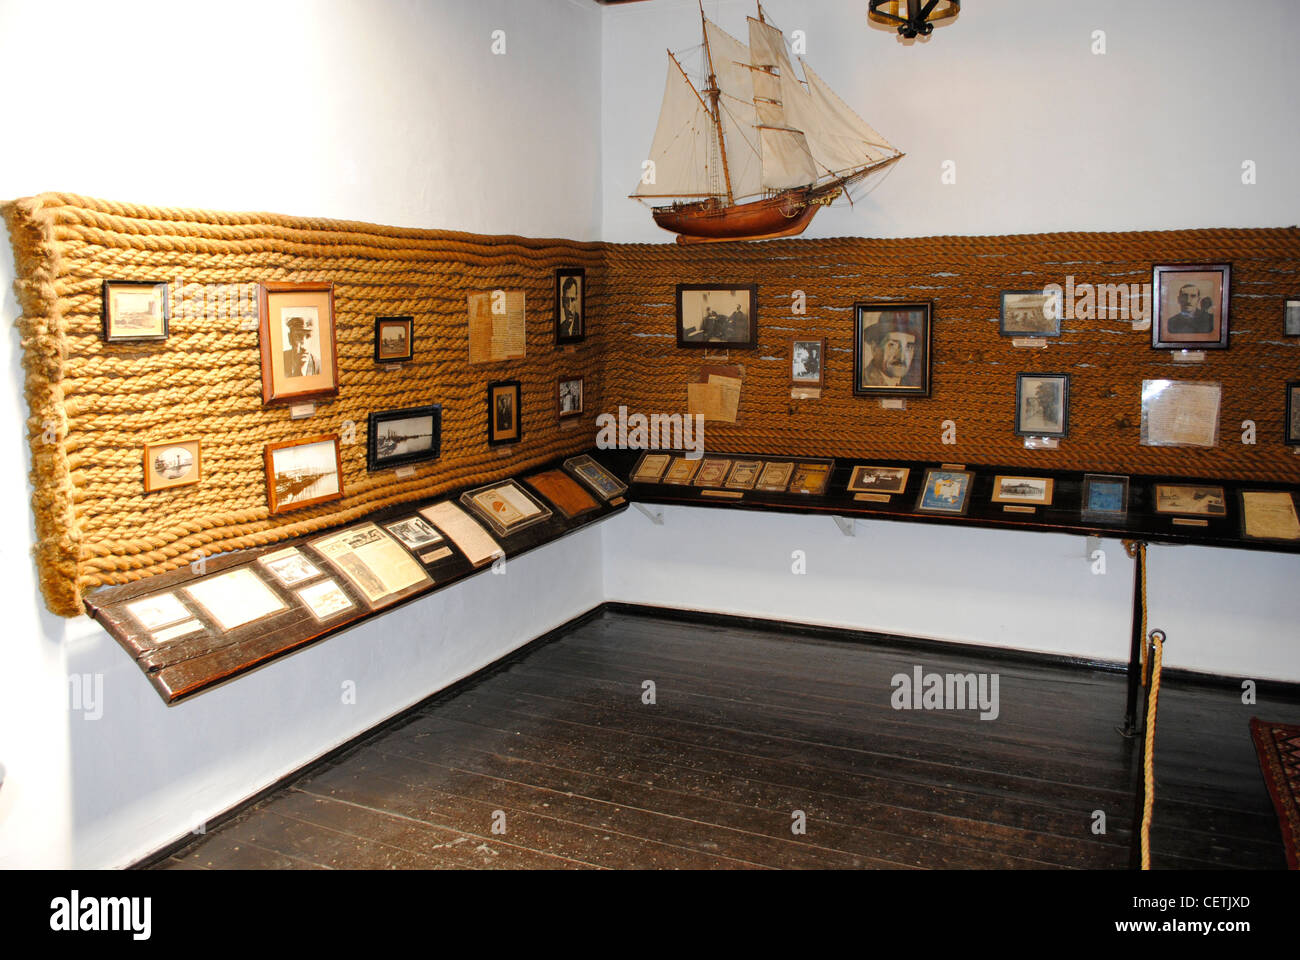 Ukraine. Autonomous Republic of Crimea. Feodosiya. Alexander Grin (1880-1932). Russian writer. House-Museum. Interior. - Stock Image